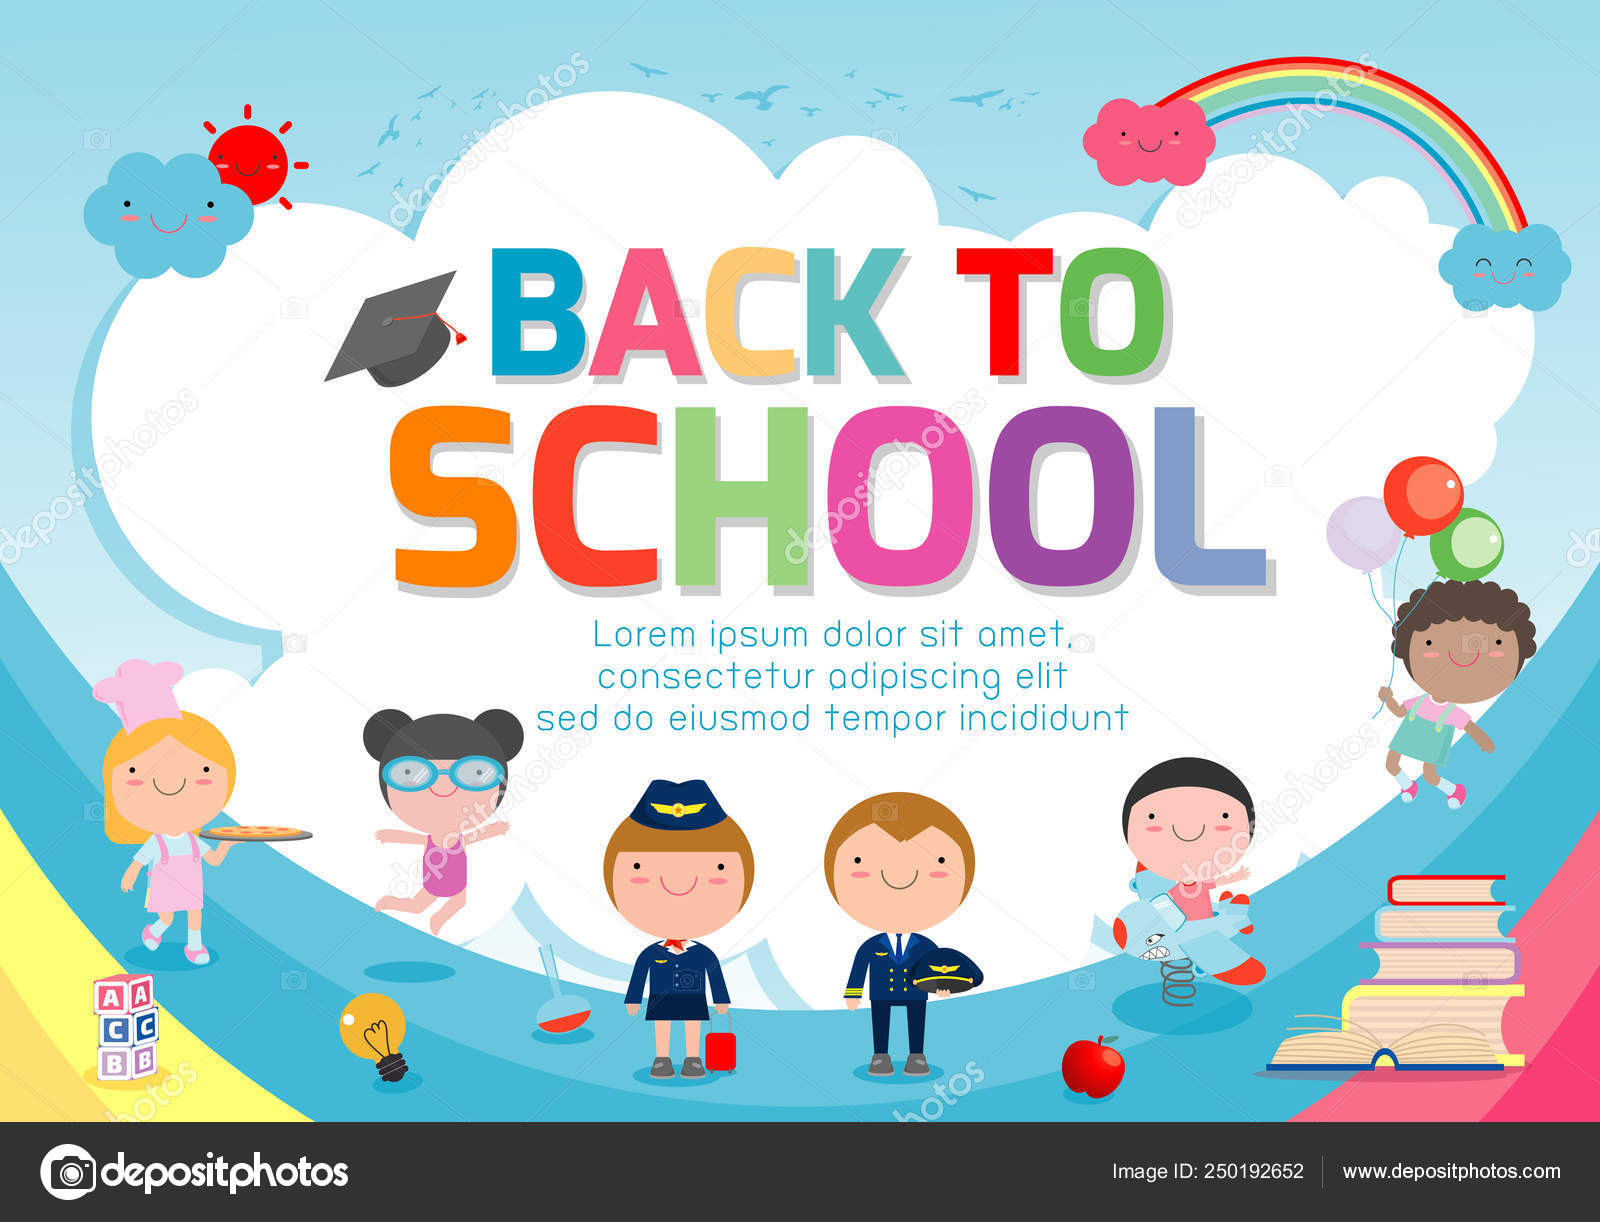 Back School Banner Background Welcome Back School Cute School Kids Stock Vector C Phanuchat10700 Gmail Com 250192652